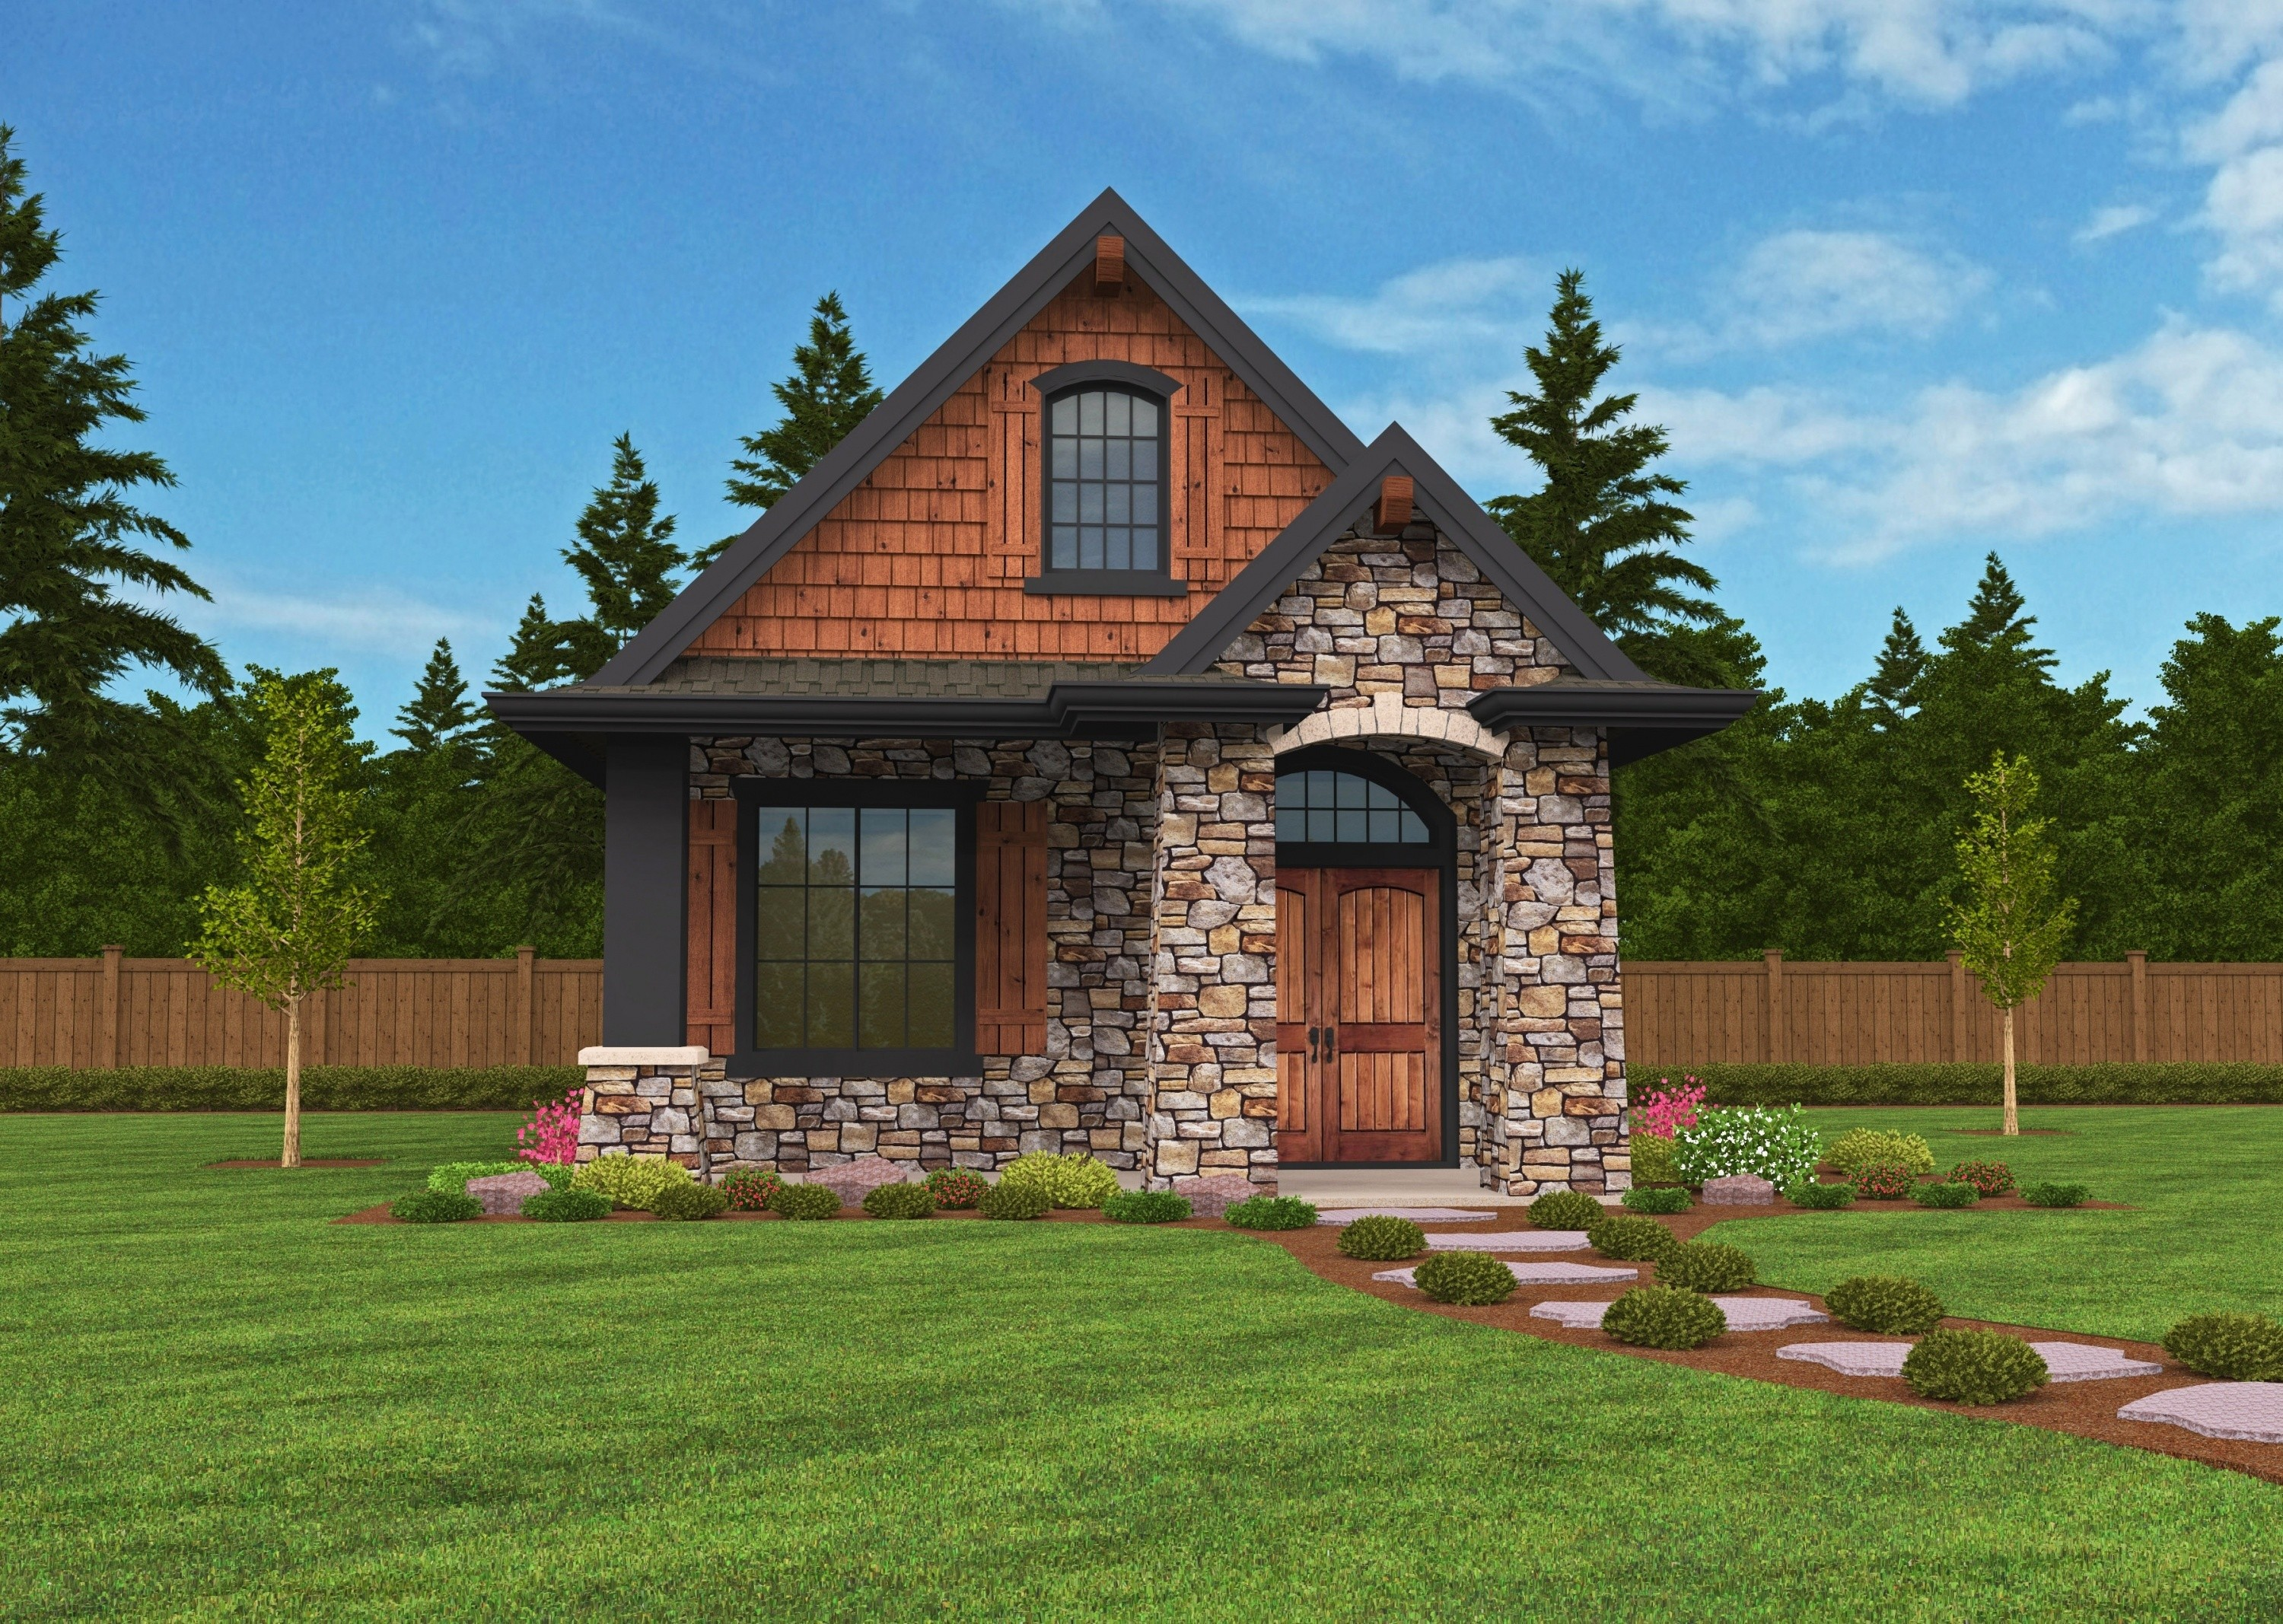 Montana house plan small lodge home design with european for Cabin house plans with photos